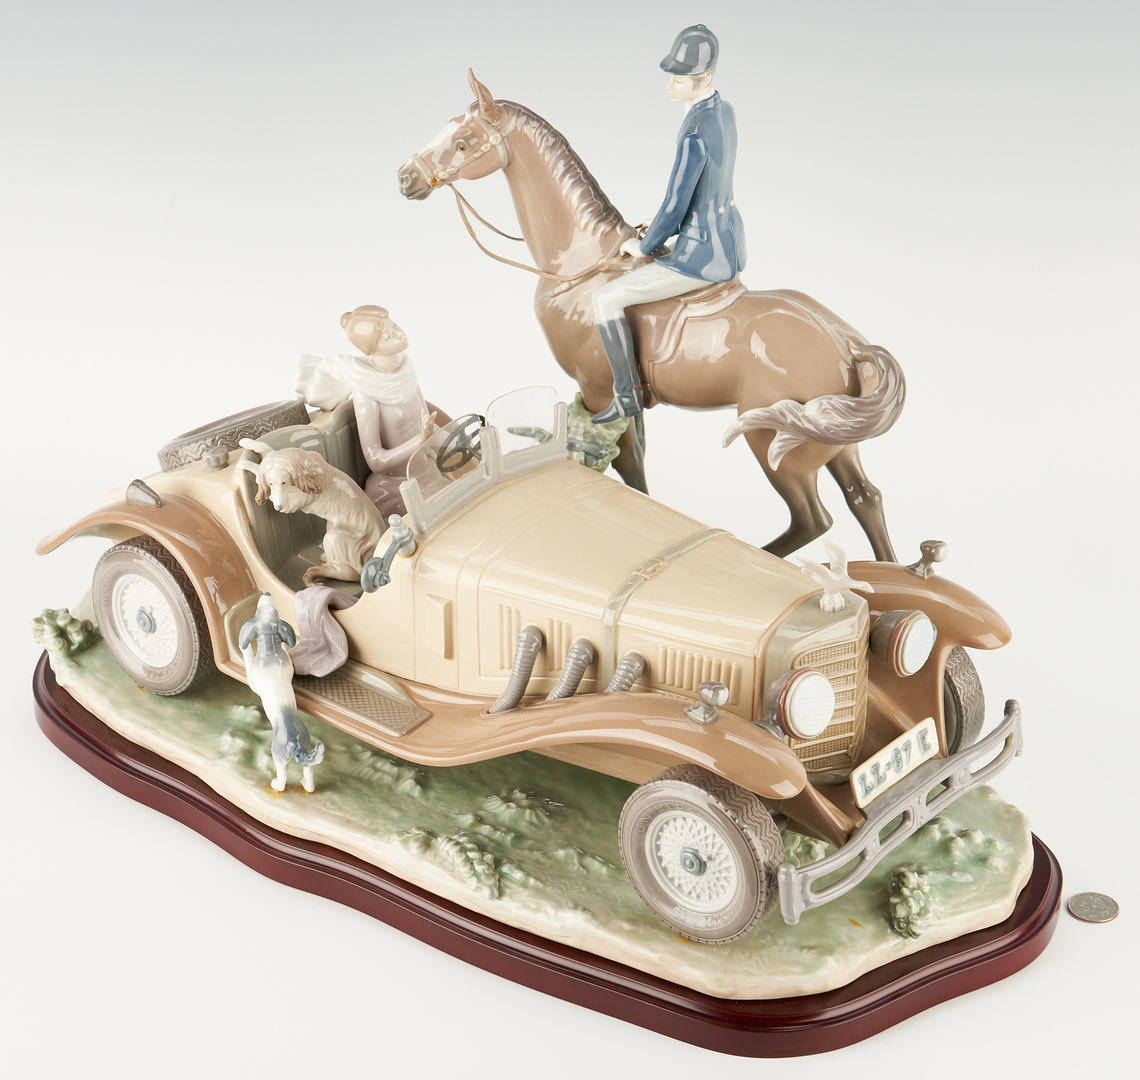 Lot 951: Limited Edition Lladro Porcelain Figurine Group, Happy Encounter